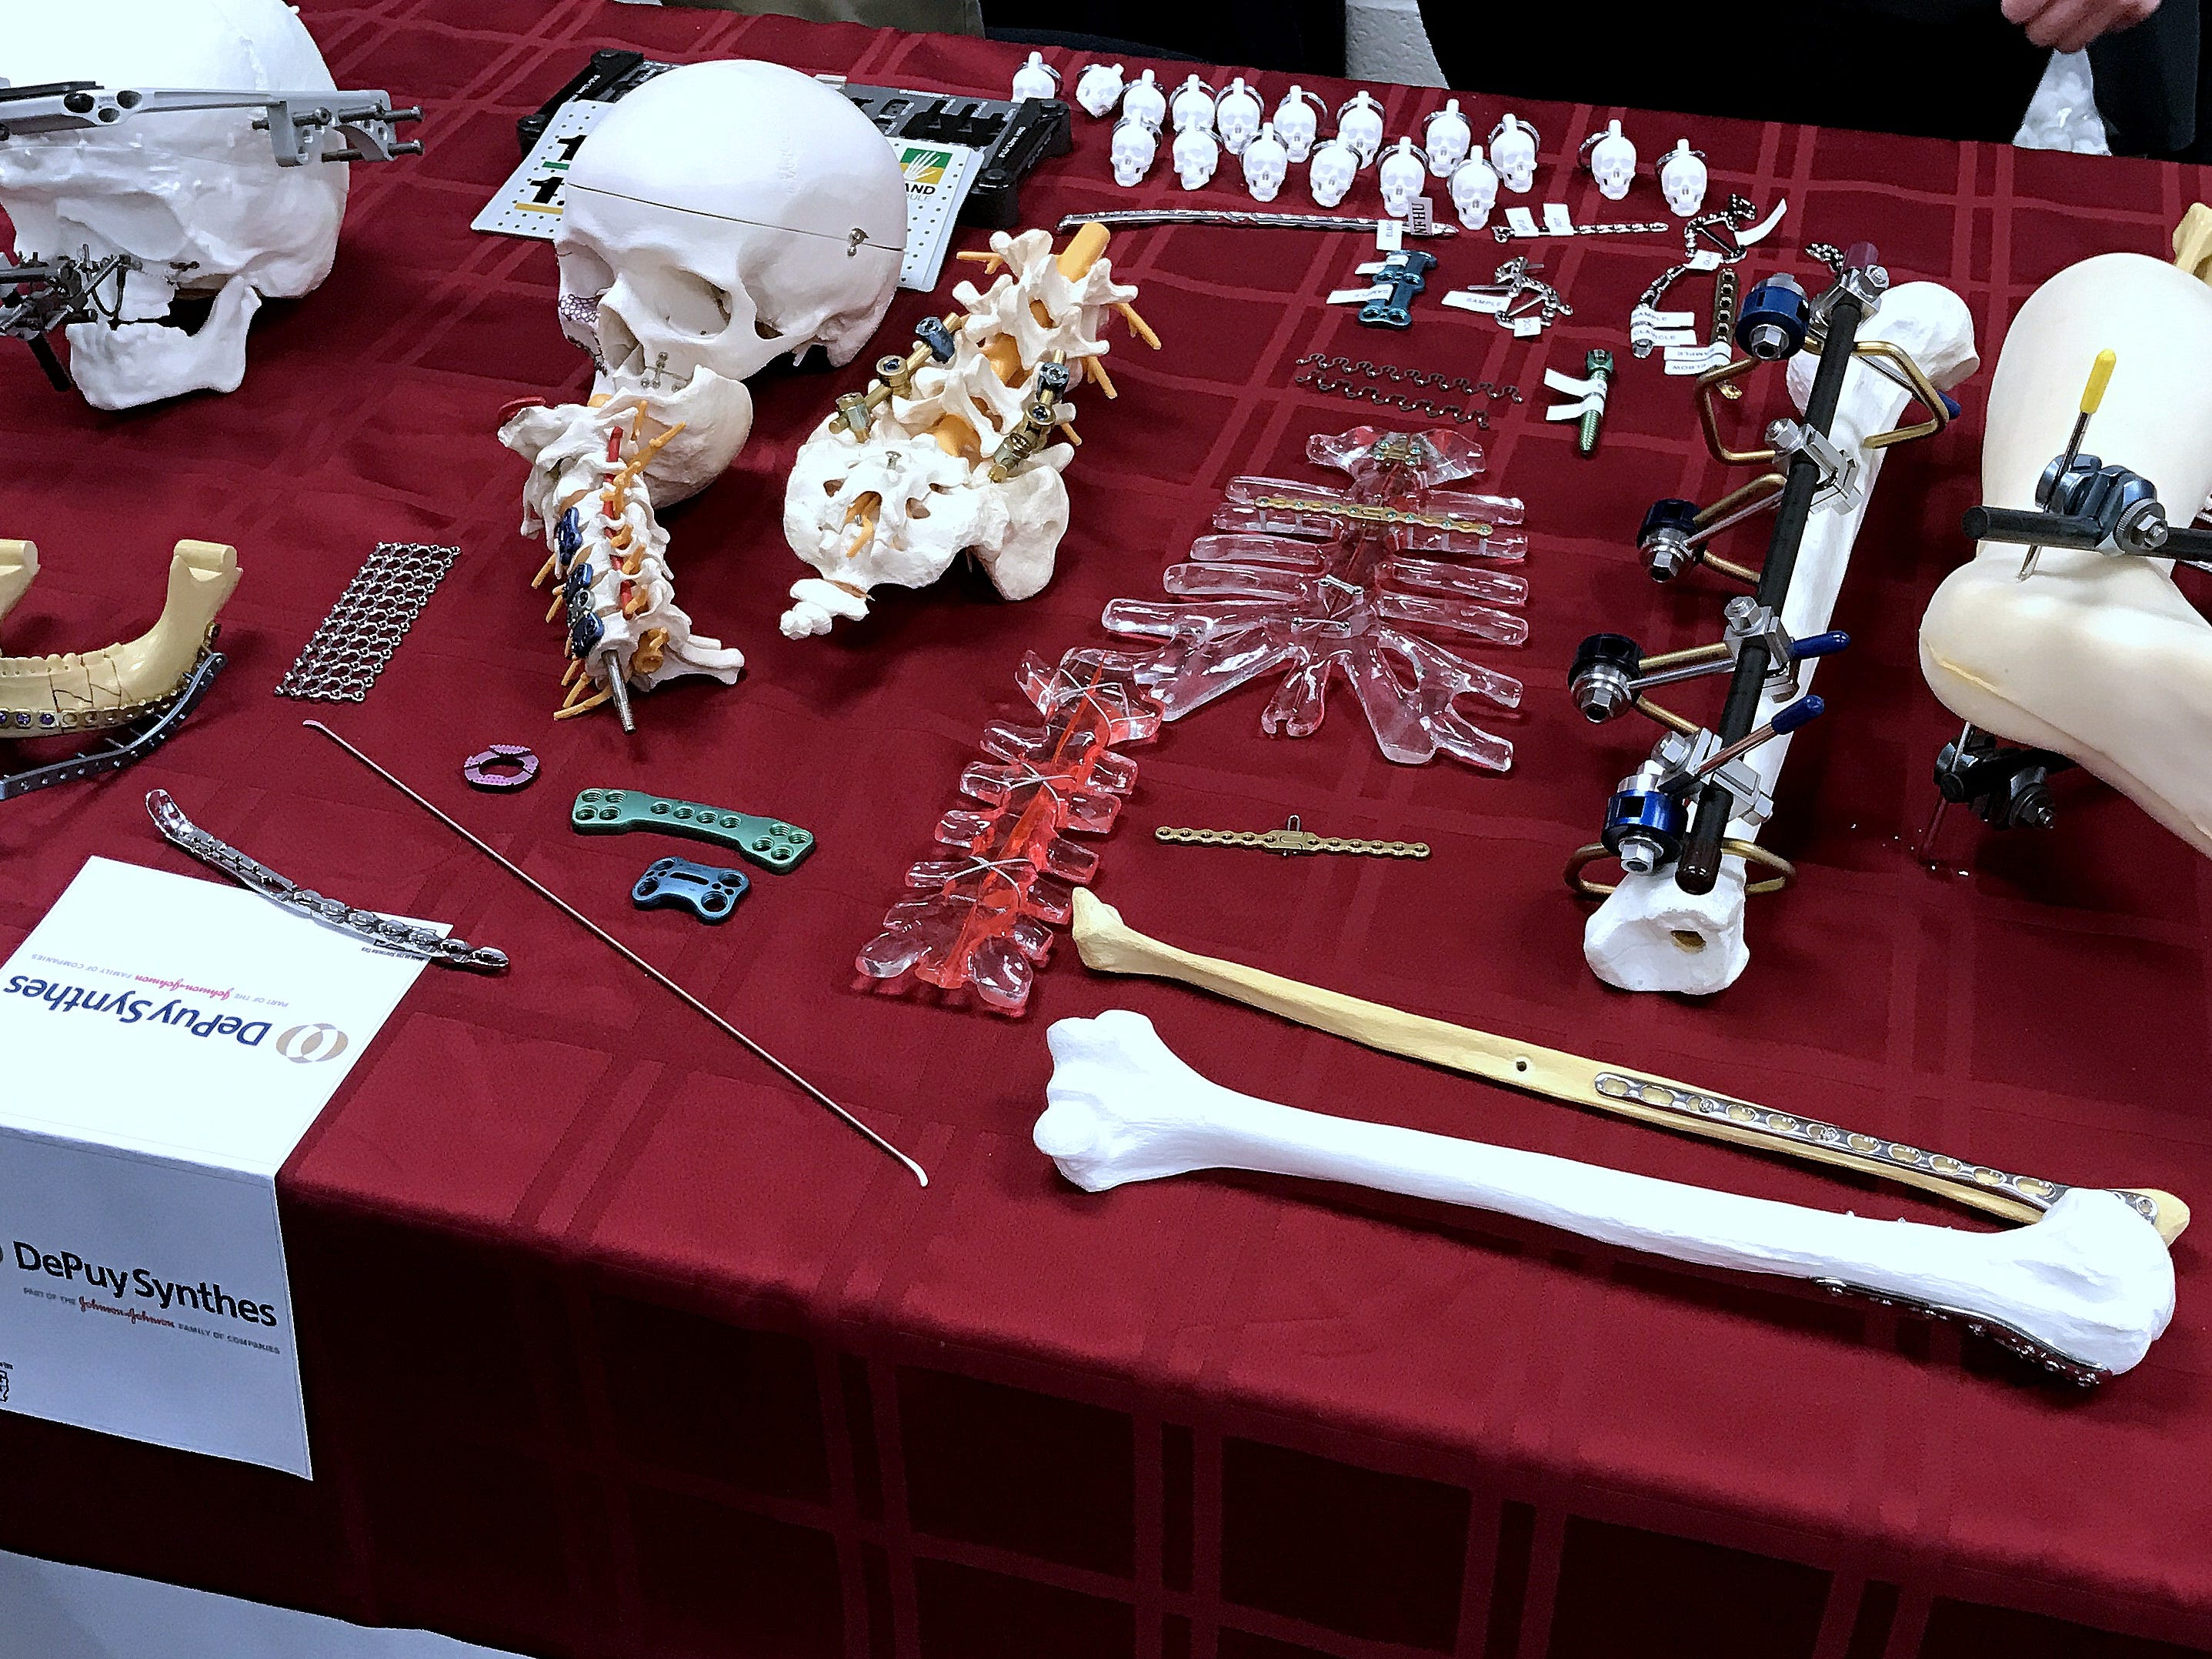 Local company DePuy Synthes displays some of the orthopedic implants it makes during Manufacturing Day on Friday at the BOCES campus in Horseheads.